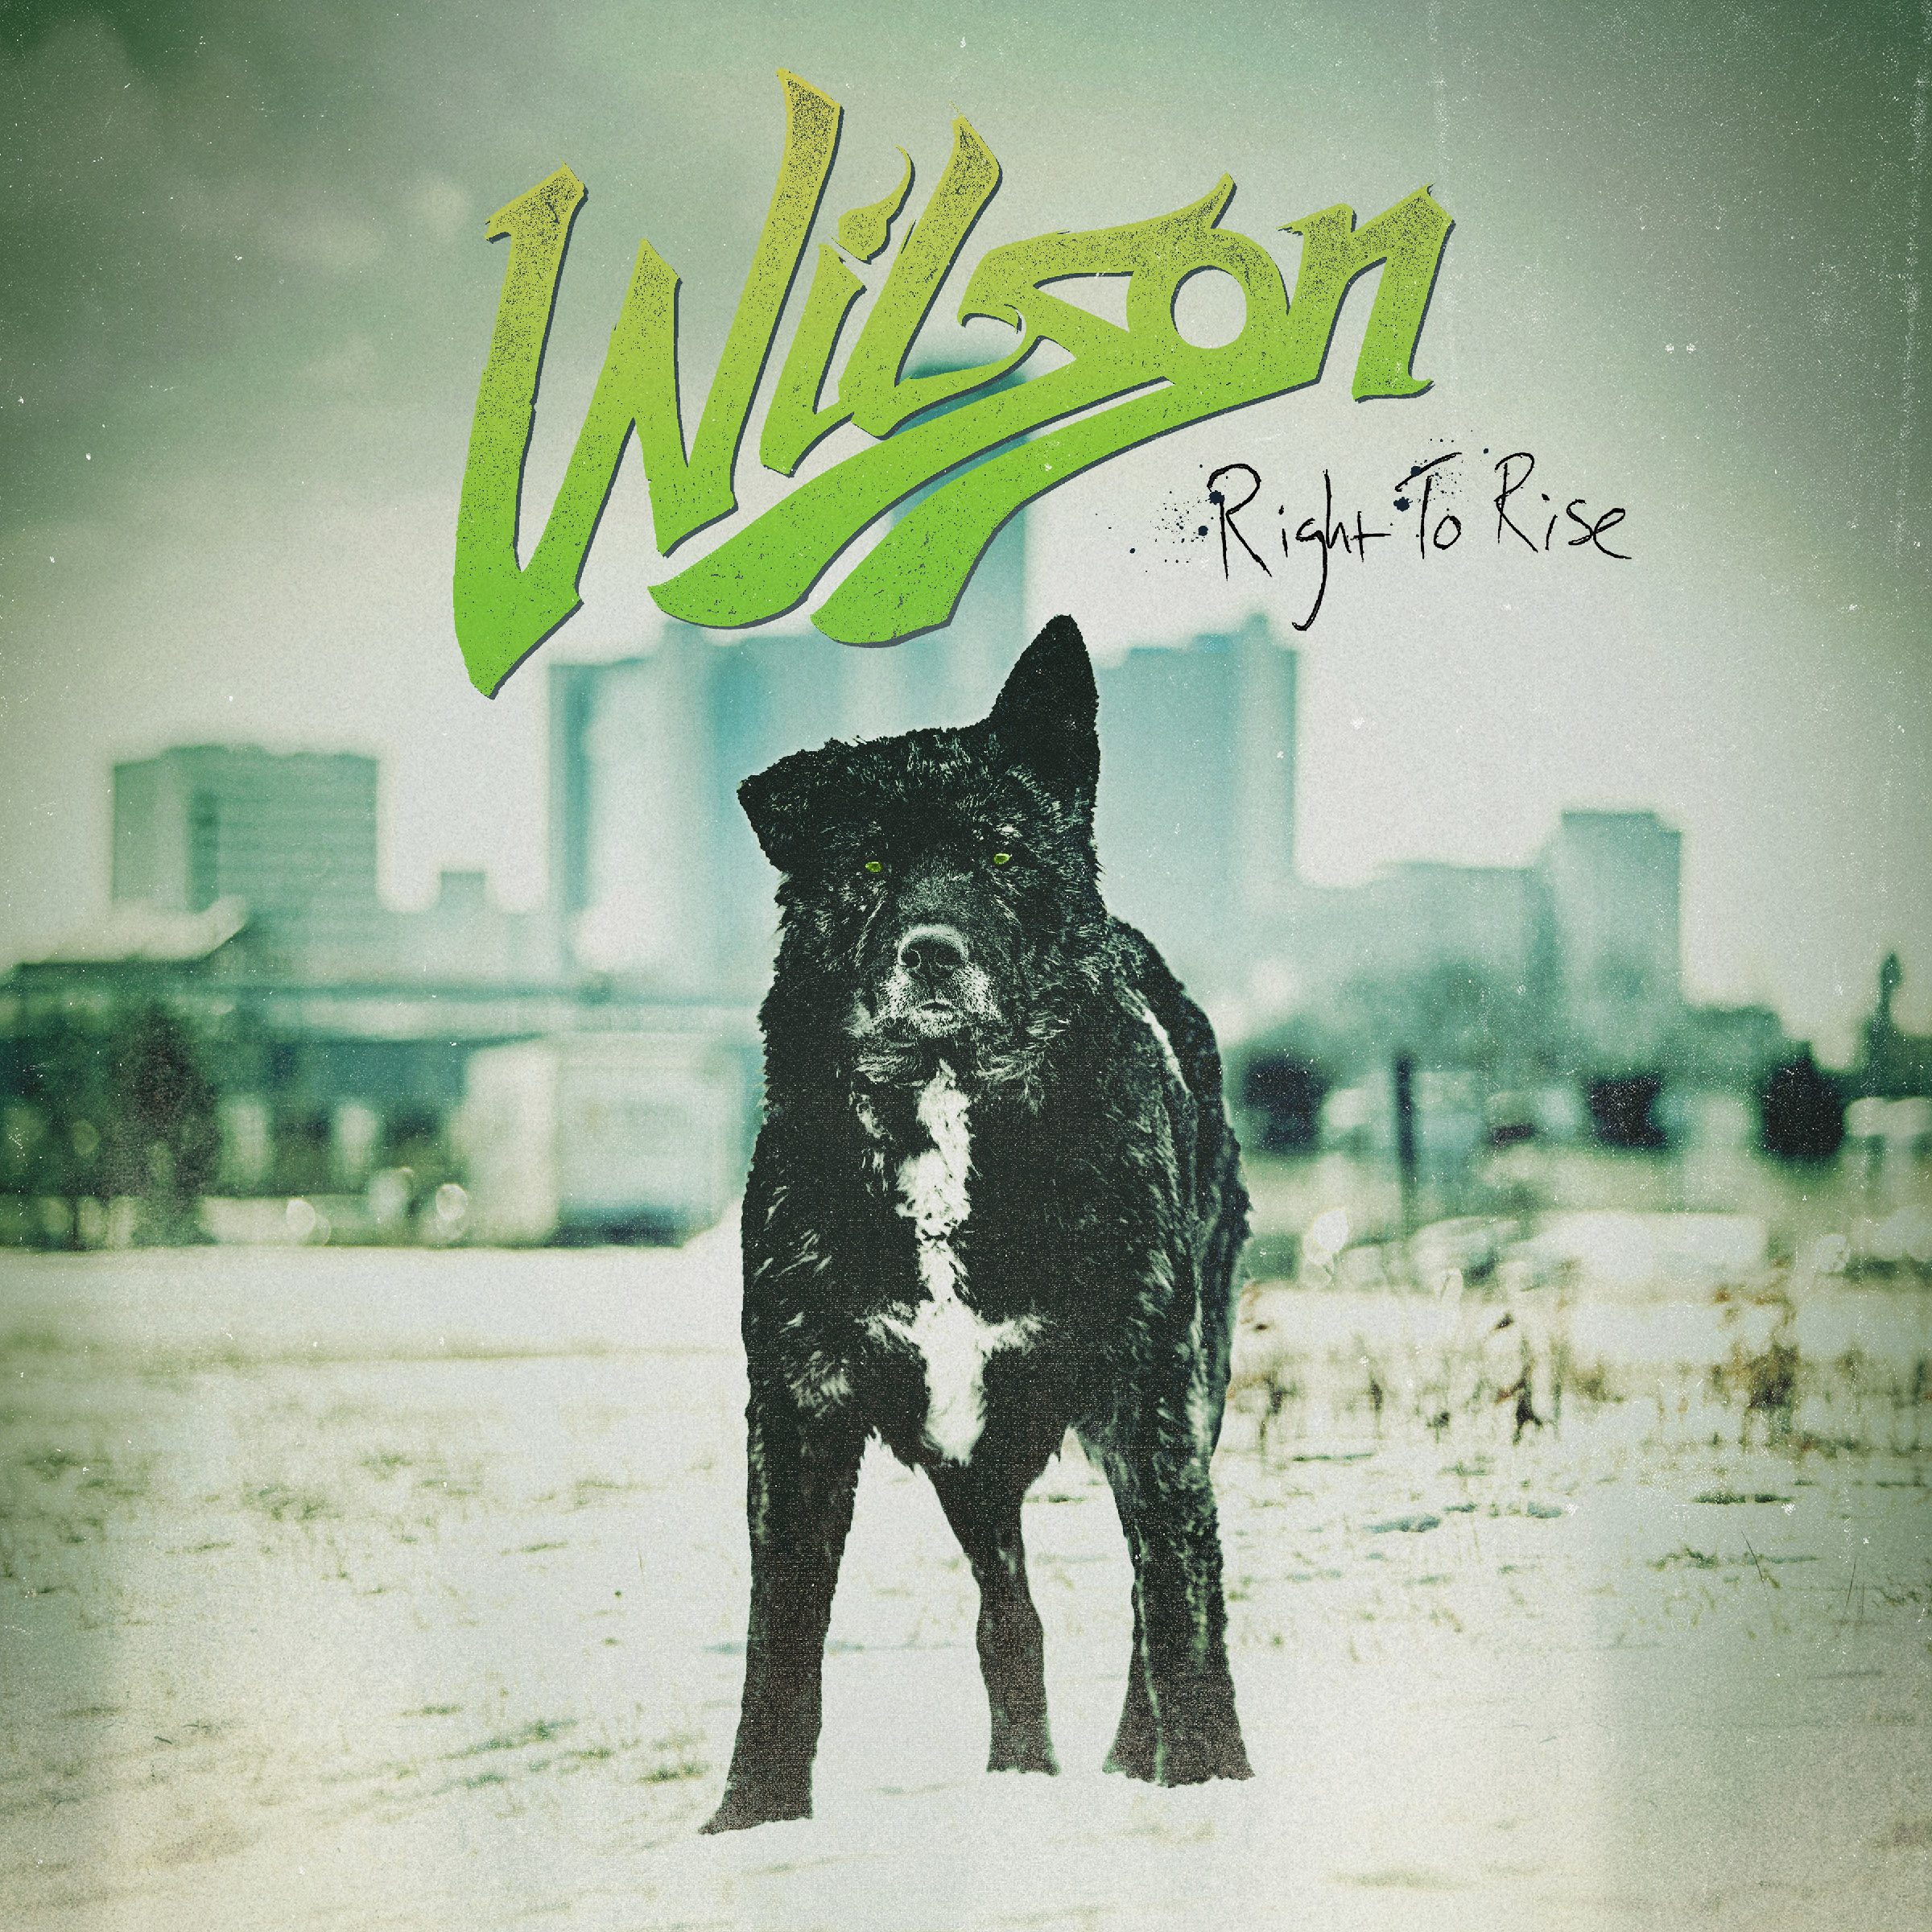 wilson-RGHT2RISE_2400